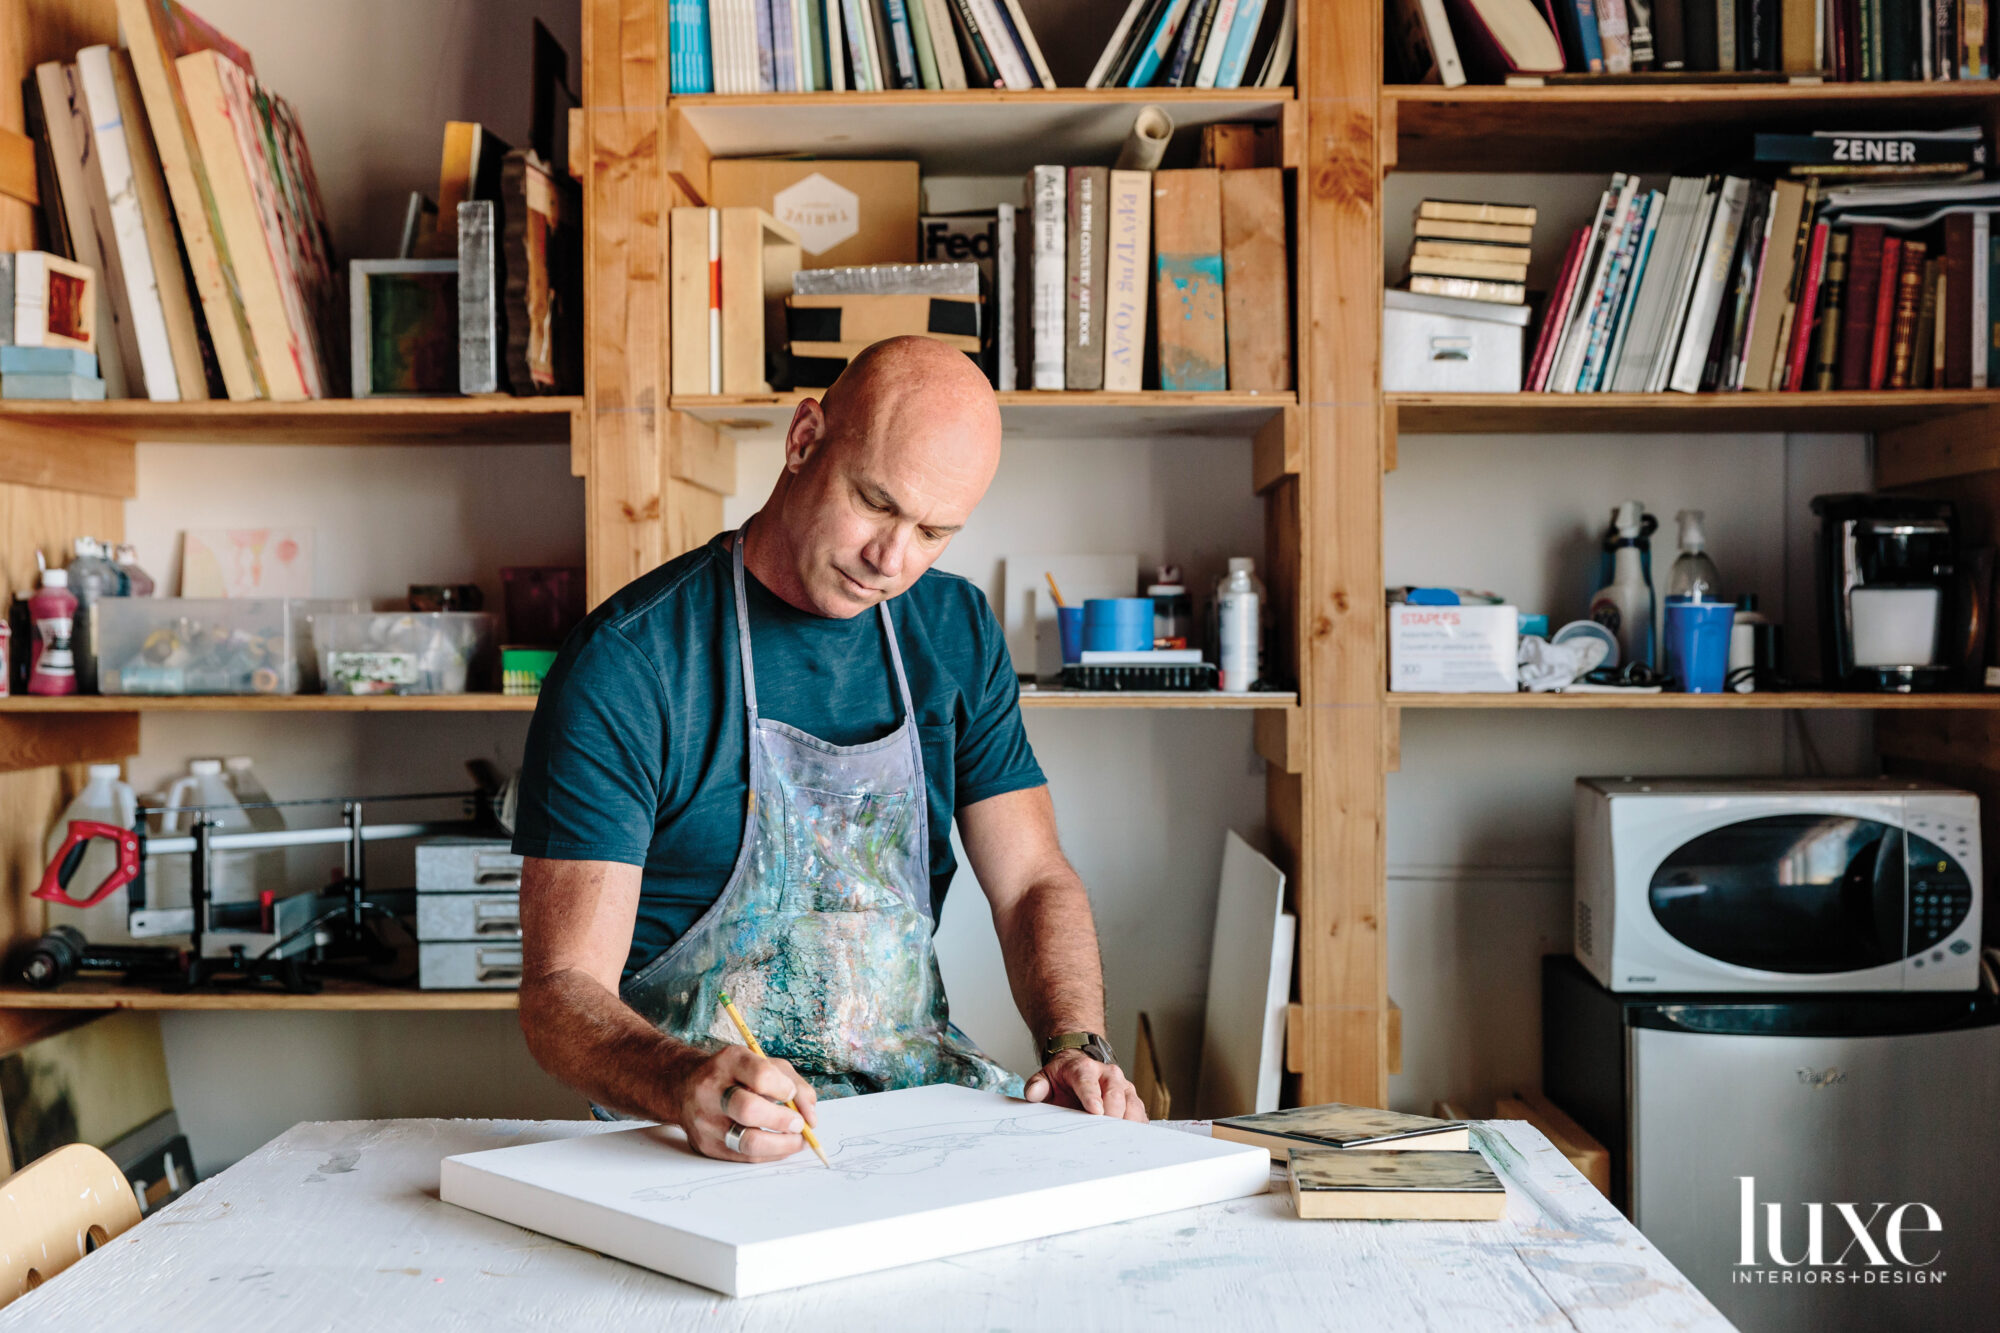 Artist Eric Zener works in his Bay Area Studio.